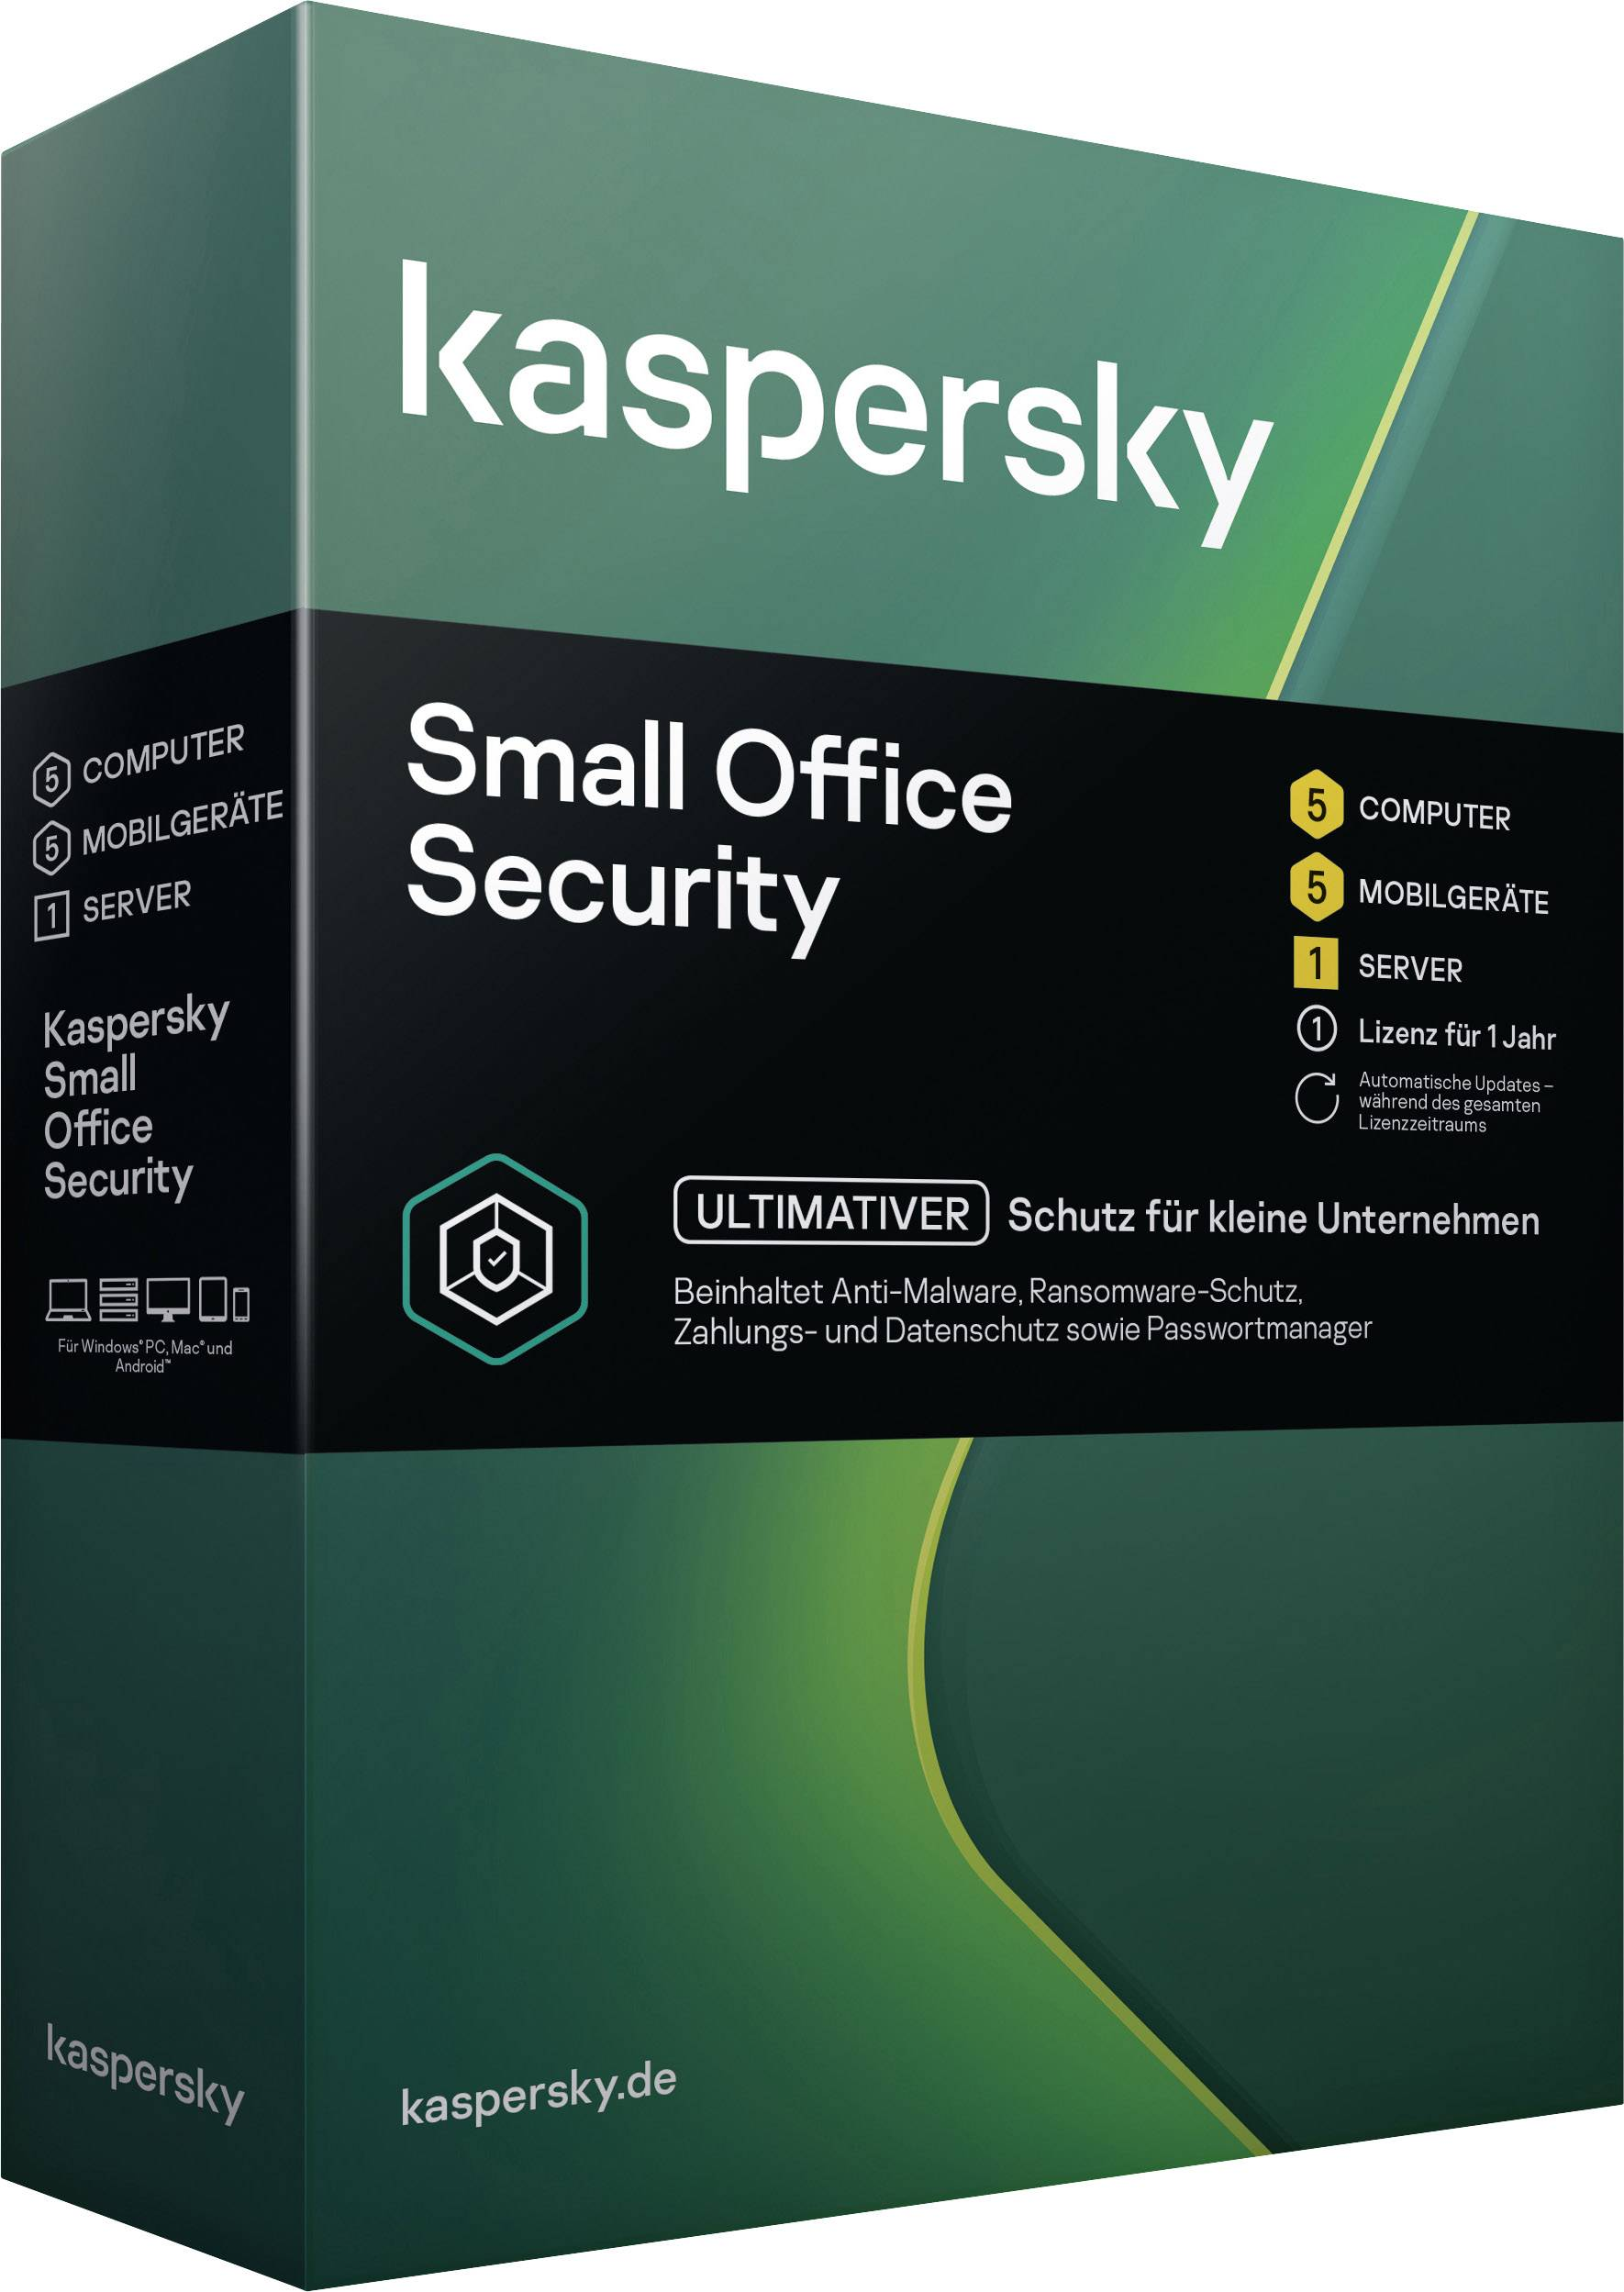 Kaspersky Lab Small Office Security 7 0 Full Version 6 Licenses Windows Mac Os Android Antivirus Security Conrad Com